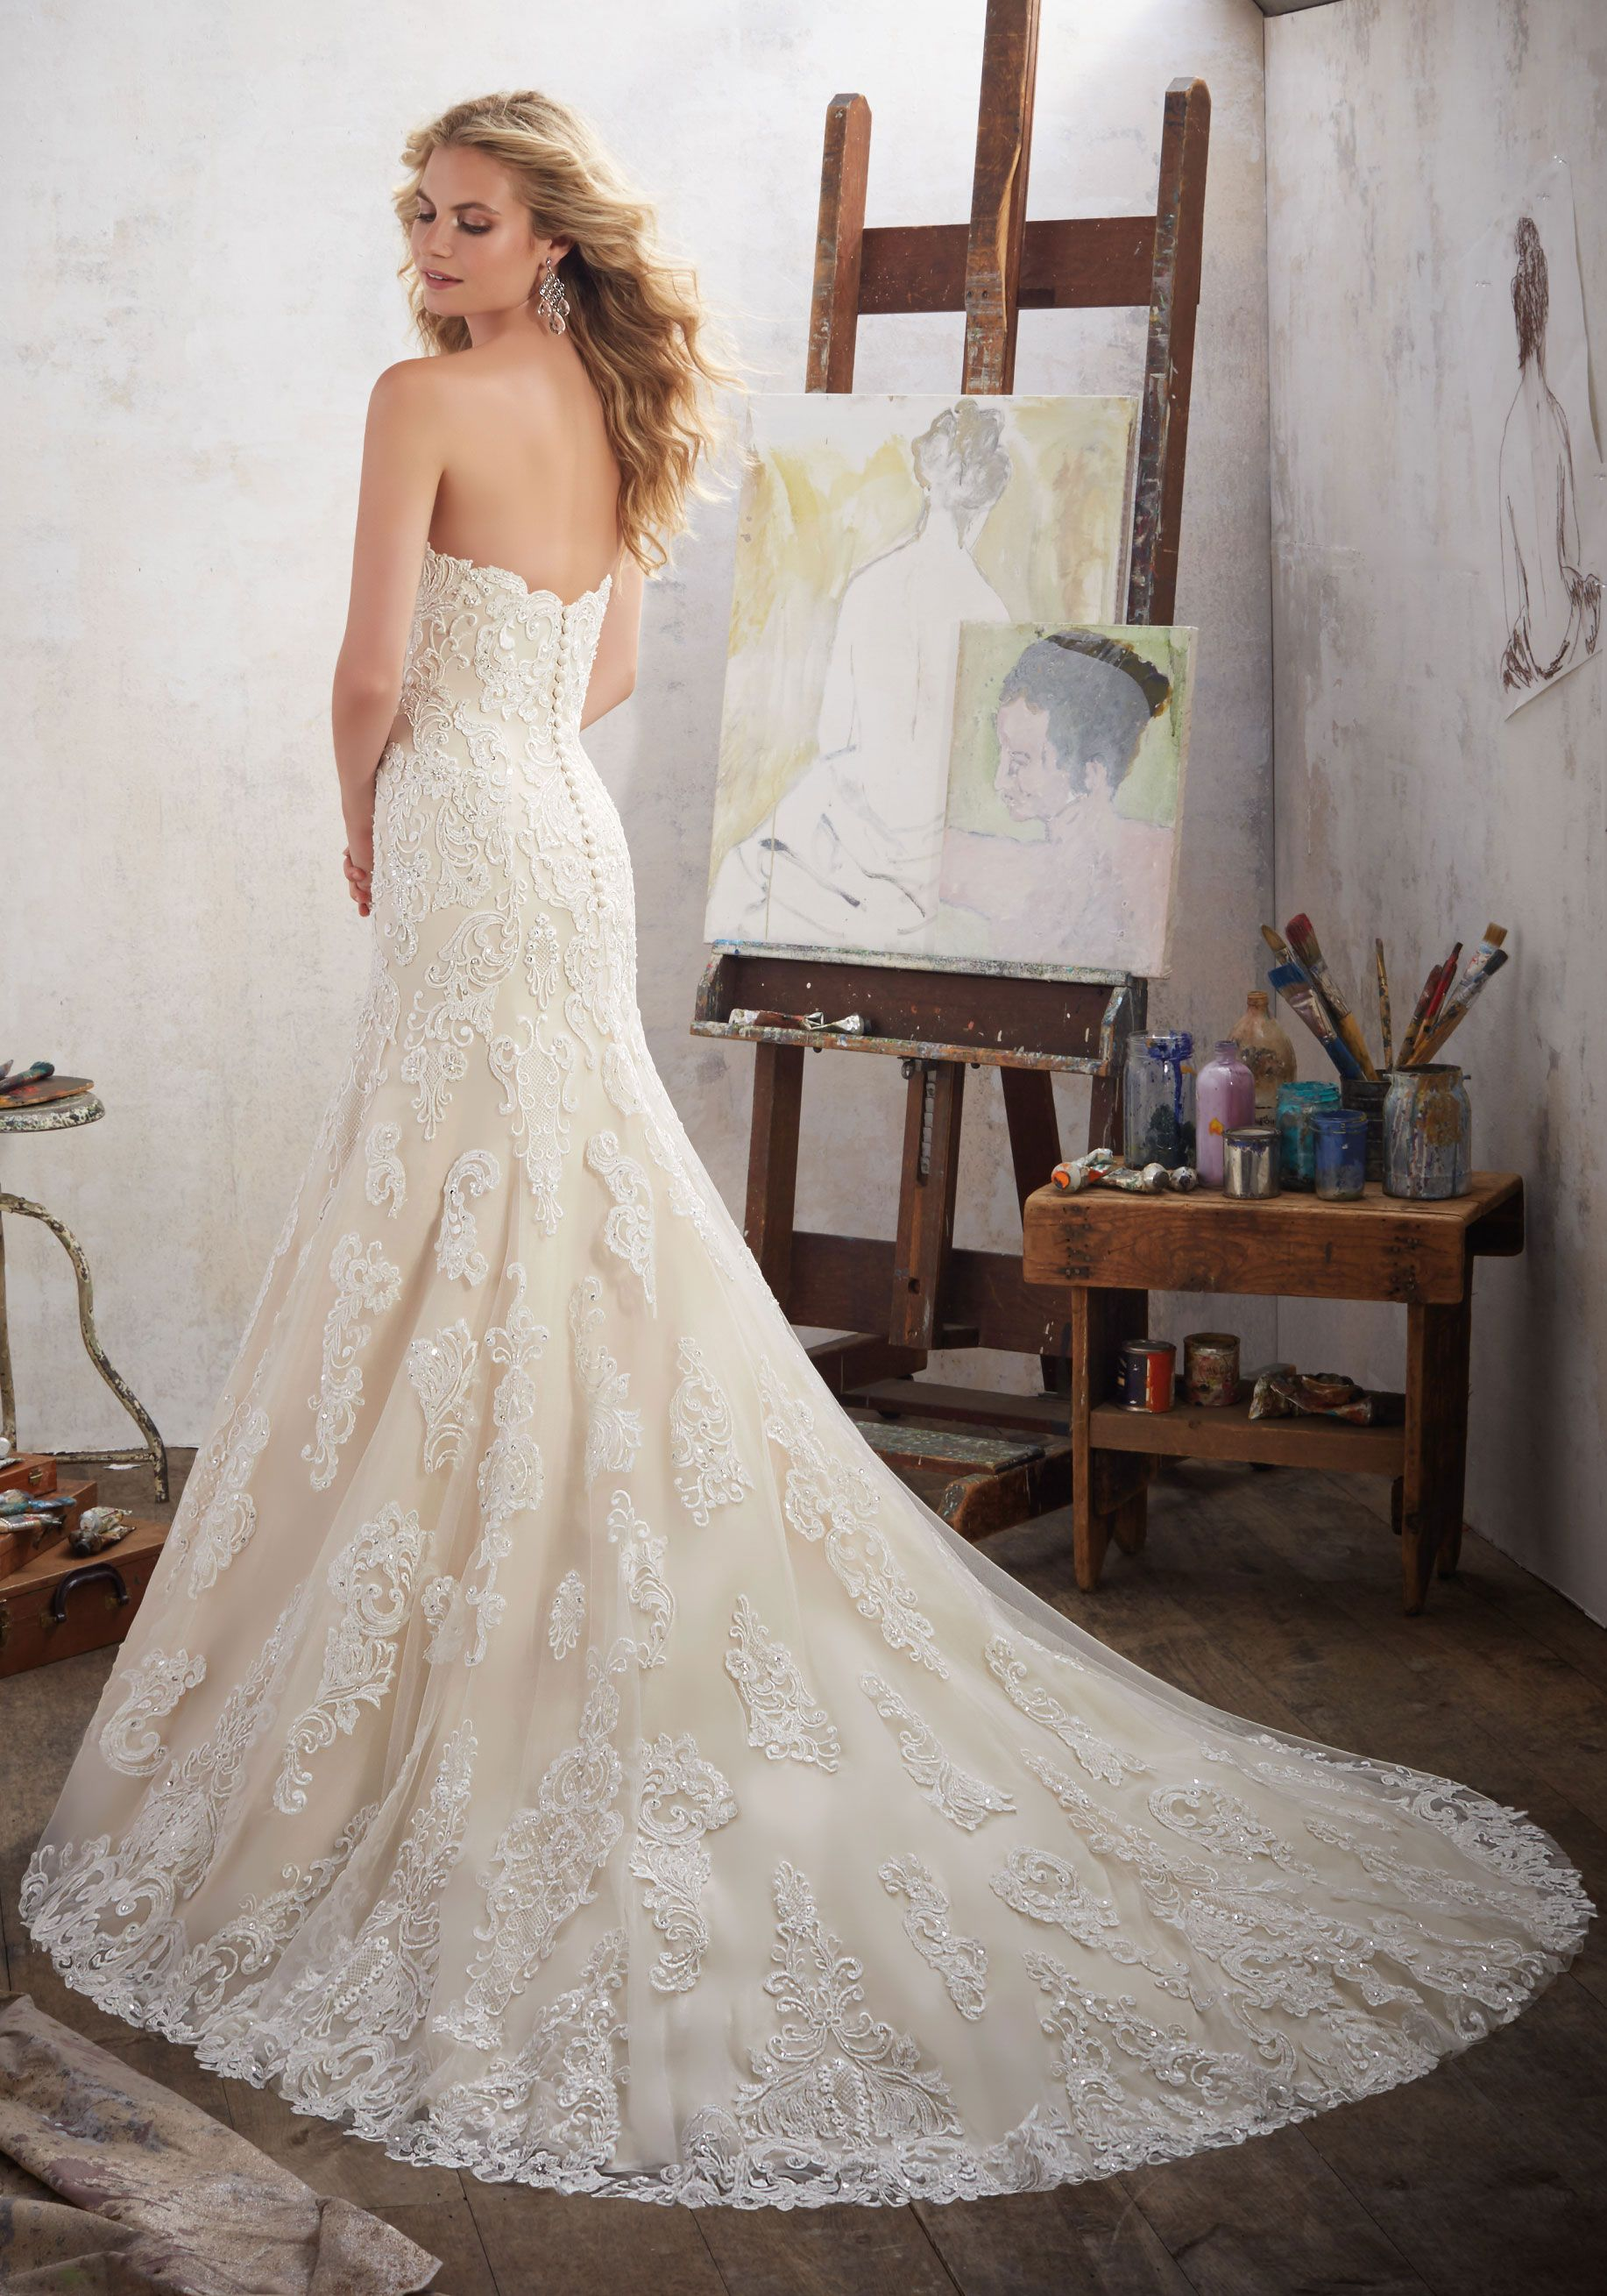 Fabulous Morilee by Madeline Gardner uMackinley u Strapless Bridal Gown Featuring a Romantic Sweetheart